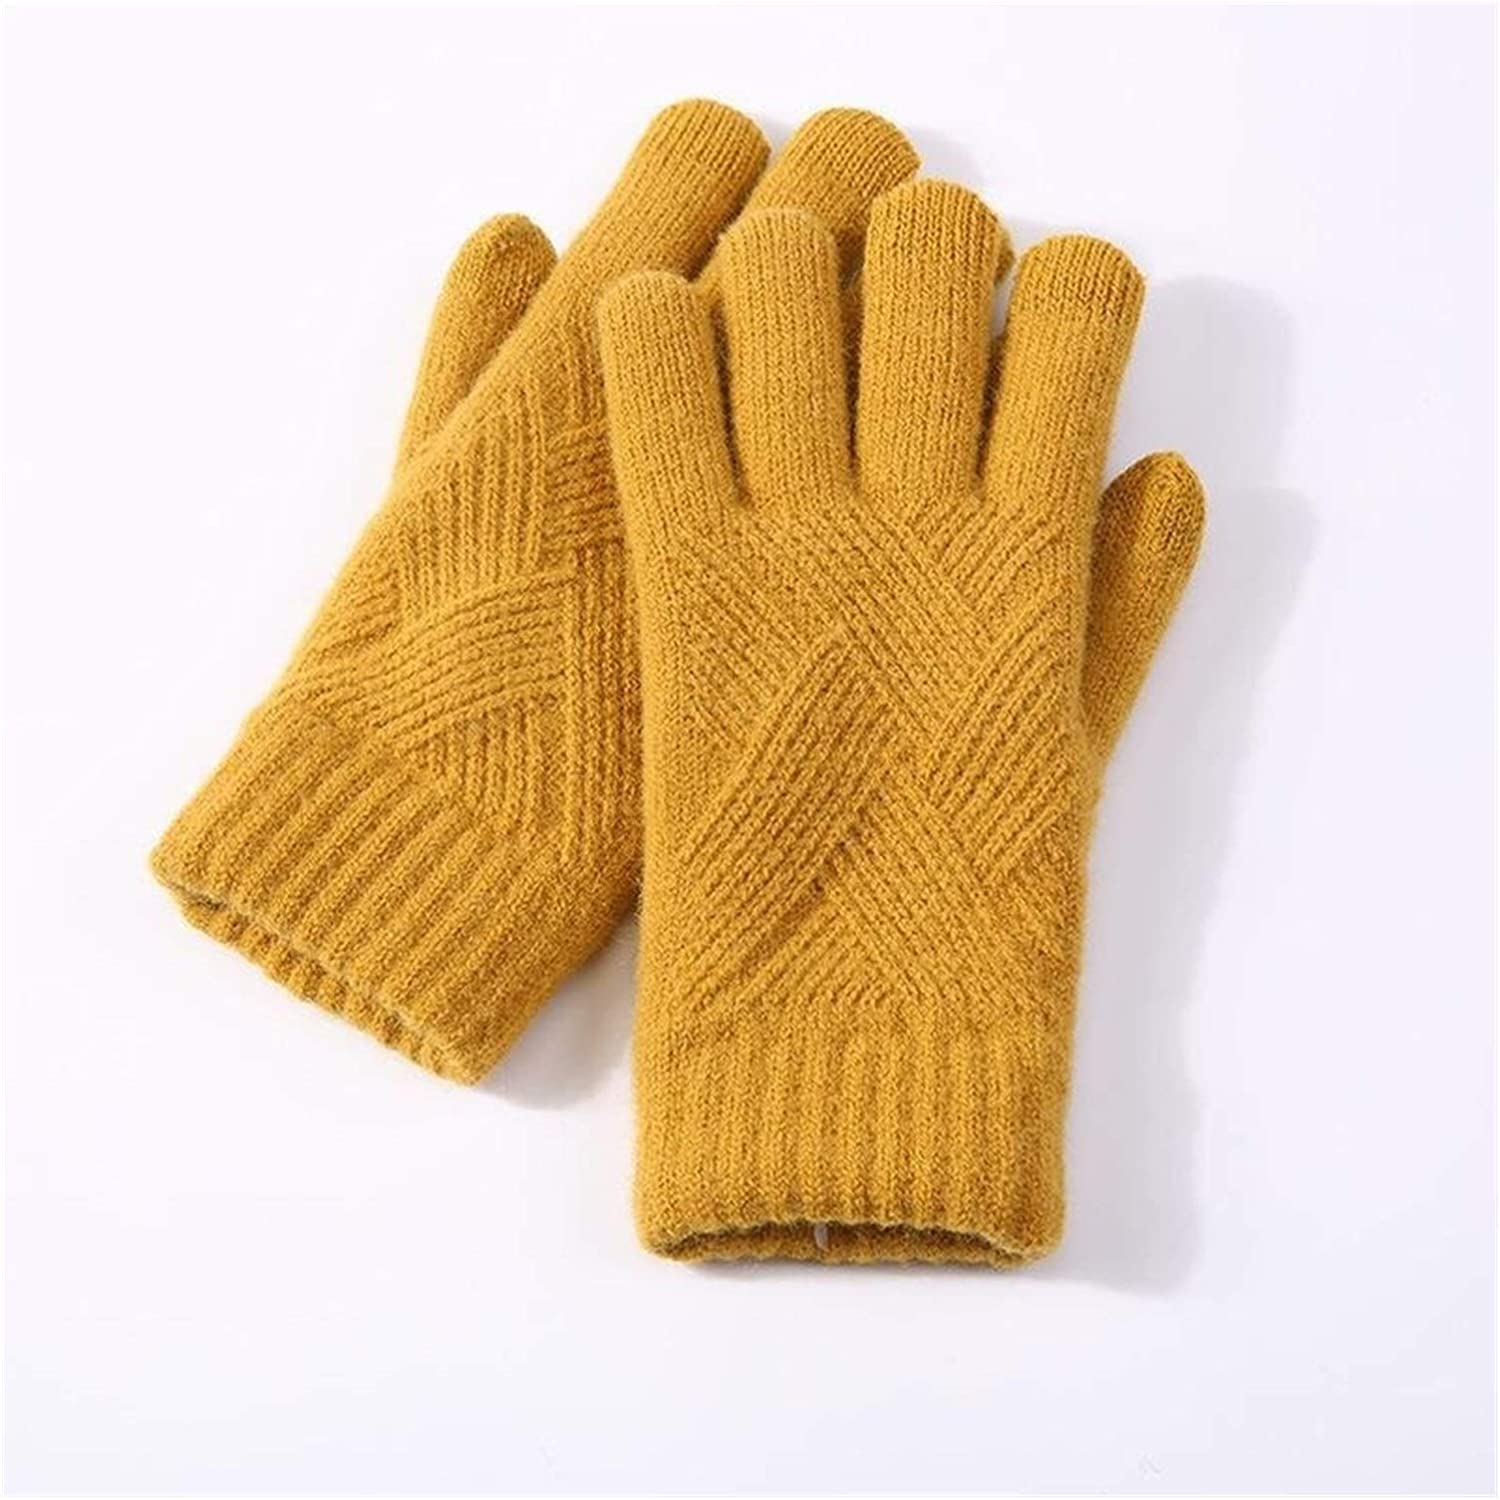 JBIVWW Thickening Knit Gloves Women's Autumn Winter Warm Touch Screen Glove Acrylic Outdoor Riding Mittens Gloves Windproof (Color : Yellow)